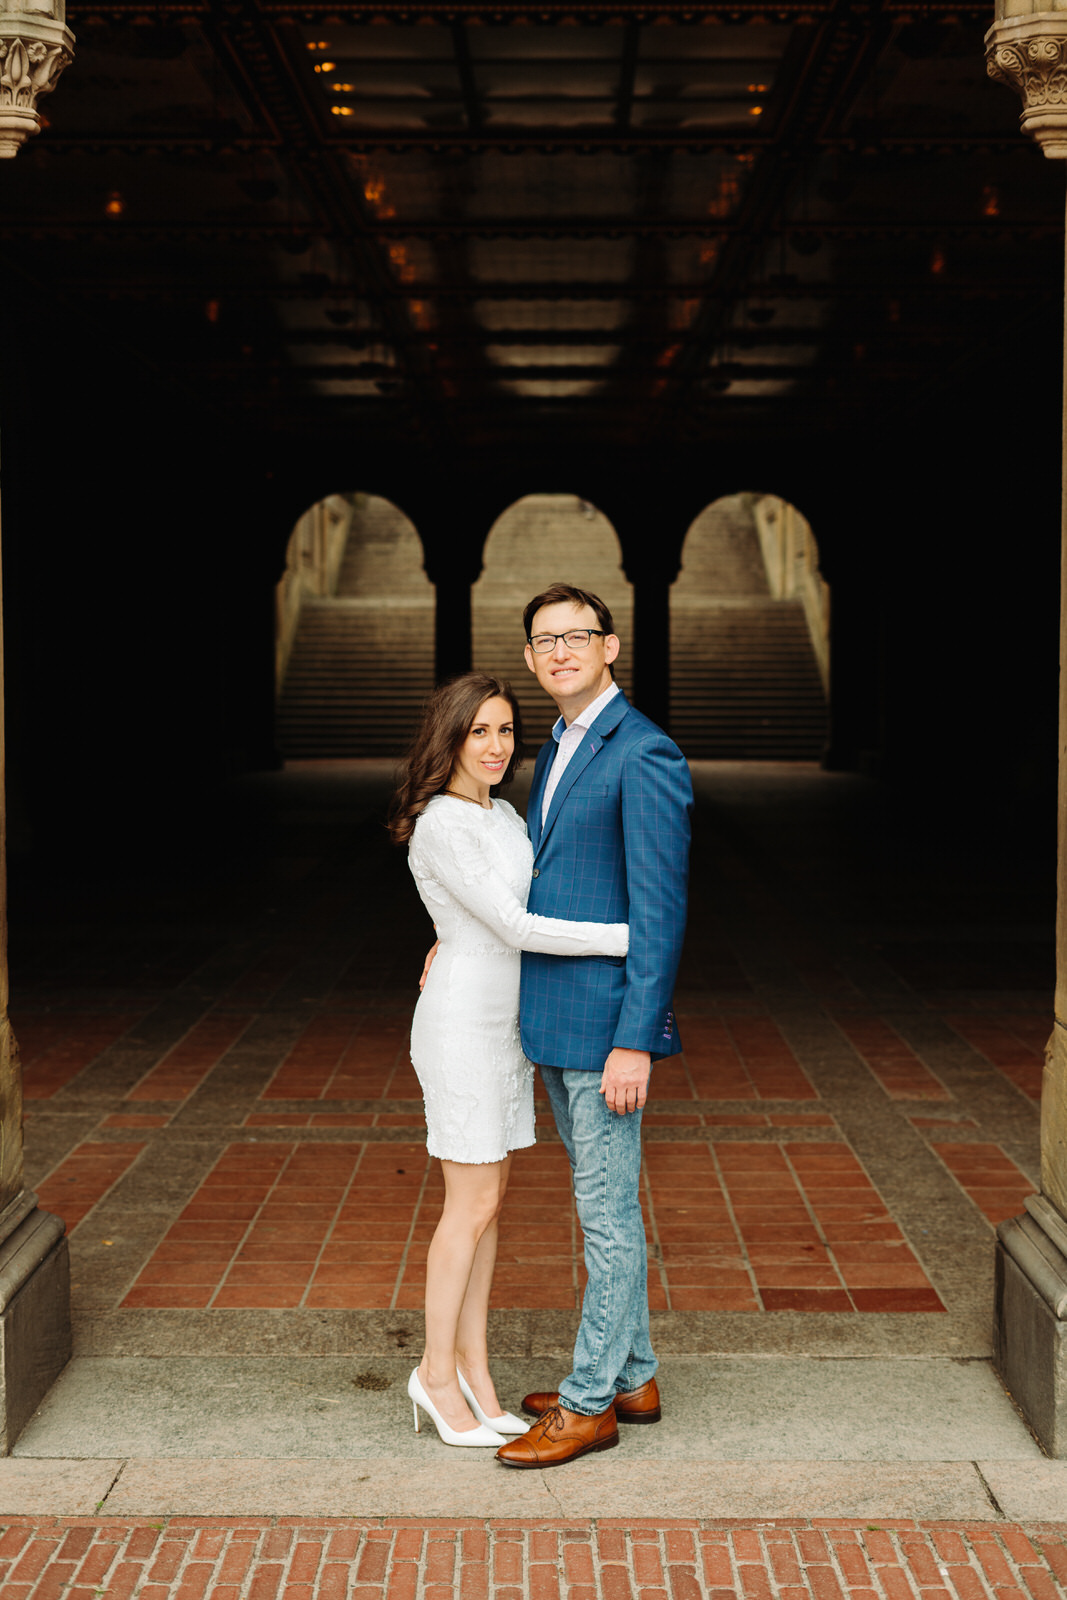 Bethesda Terrace Engagement Photos, Central Park Engagement Session Guide, Where to elope in central park, Bethesda Terrace, Bethesda Arches, Bethesda Engagement Photos, Bethesda Engagement Photo Spots